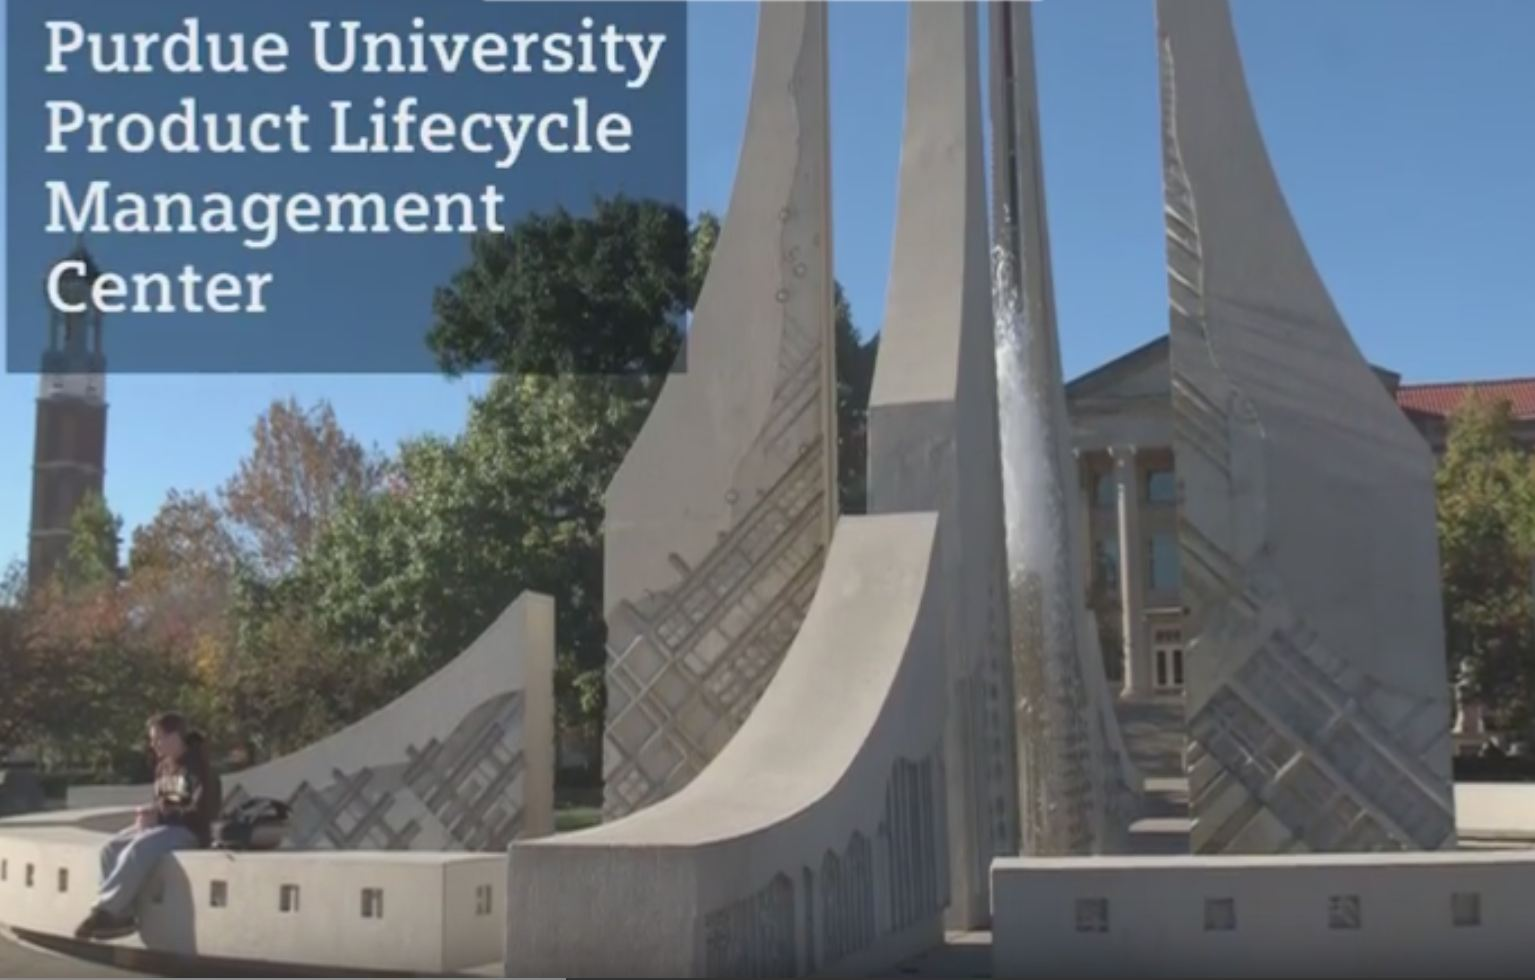 Purdue University Product Lifecycle Management